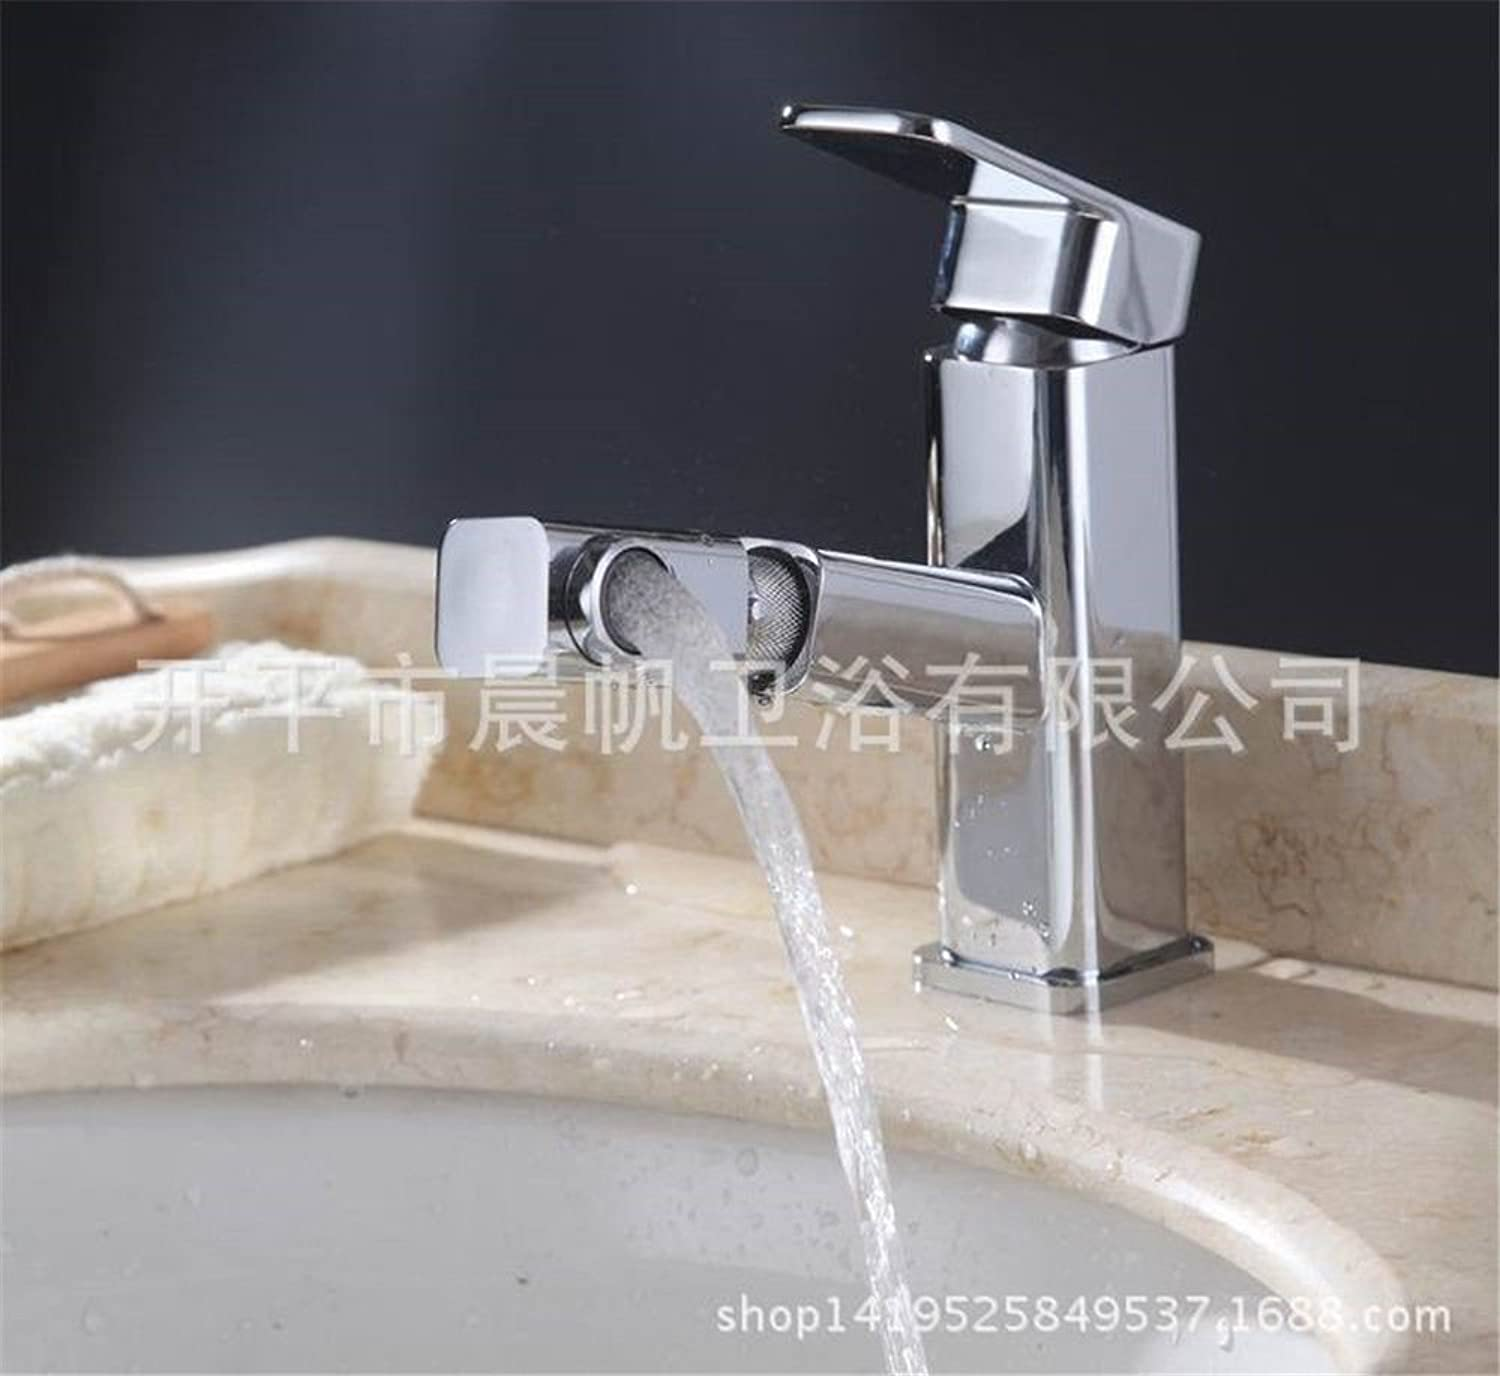 Lalaky Taps Faucet Kitchen Mixer Sink Waterfall Bathroom Mixer Basin Mixer Tap for Kitchen Bathroom and Washroom Pulling Square redation Hot and Cold